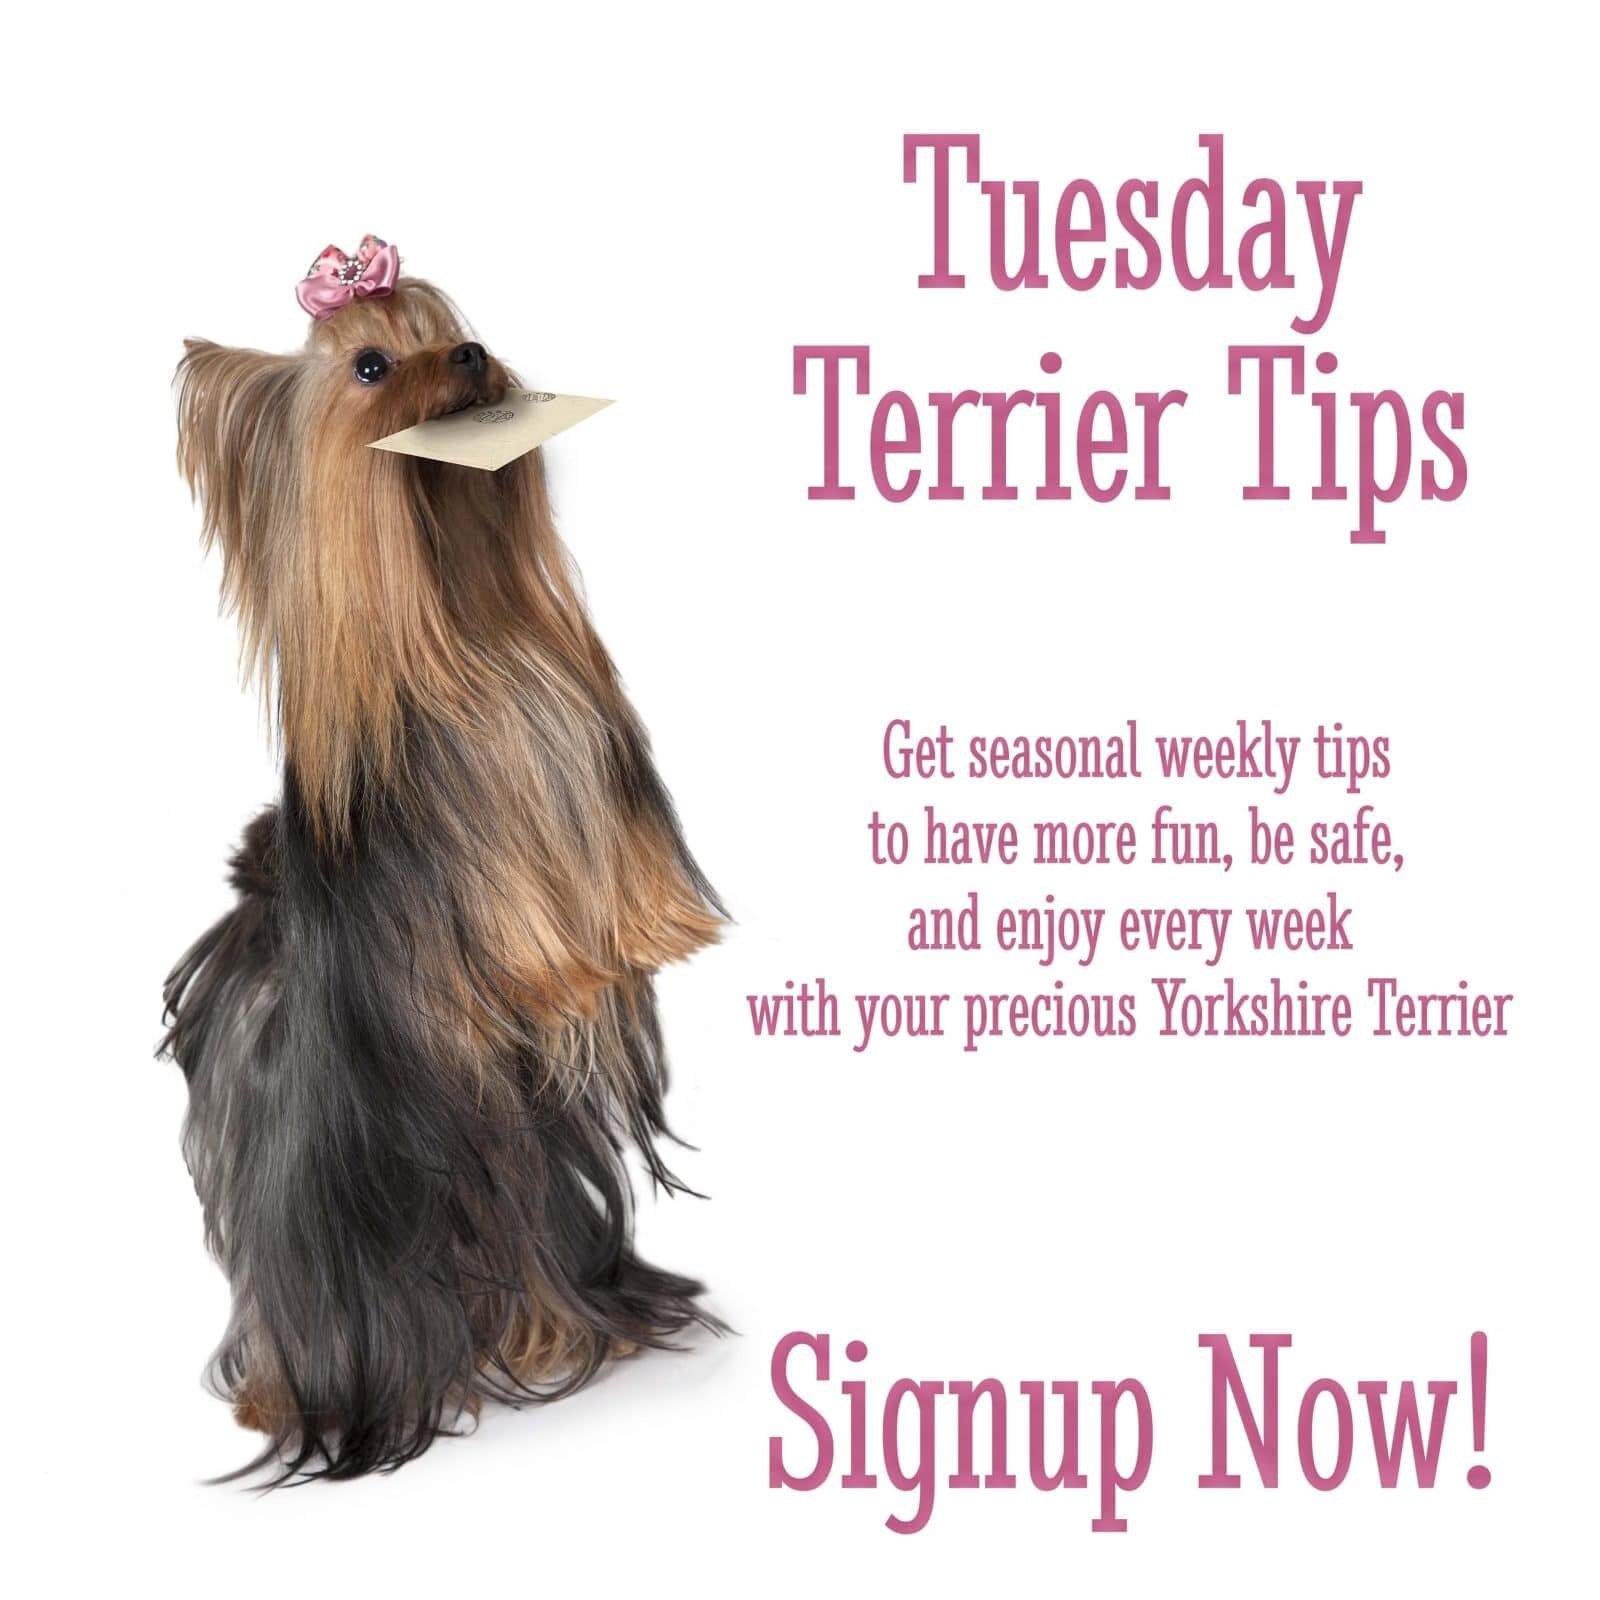 Tuesday Terrier Tips